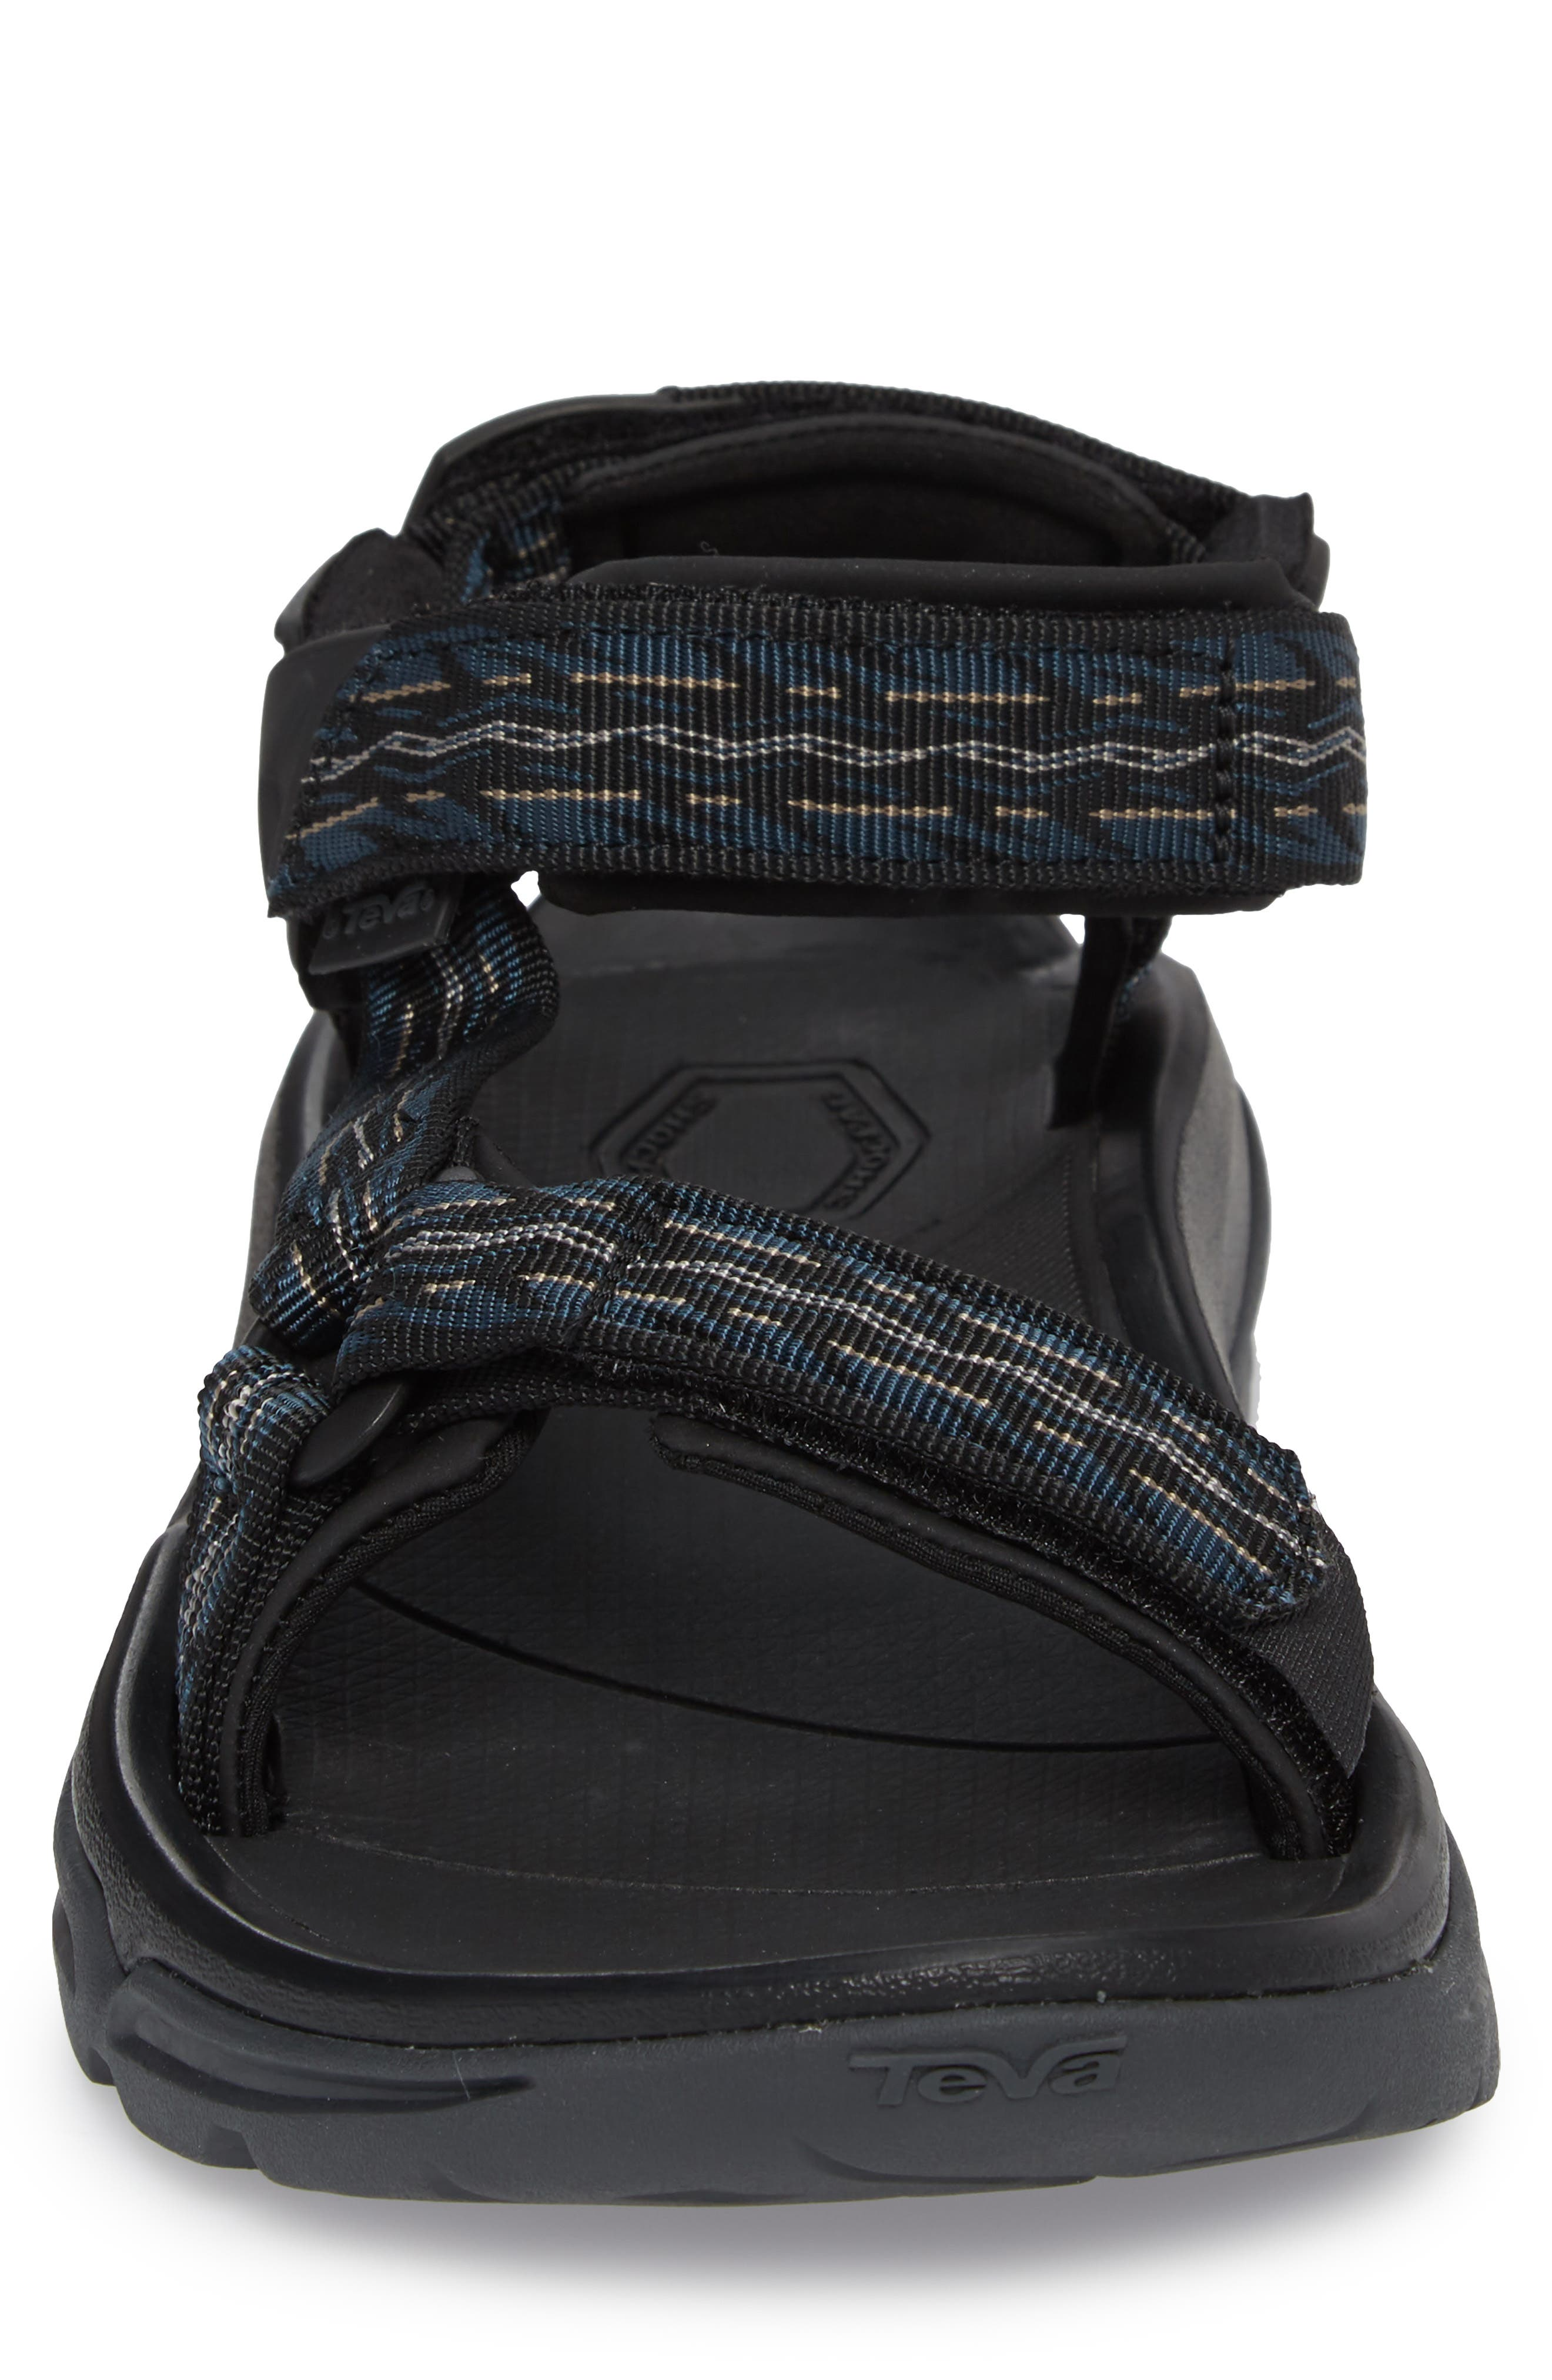 Terra Fi 4 Sport Sandal,                             Alternate thumbnail 4, color,                             MIDNIGHT BLUE NYLON